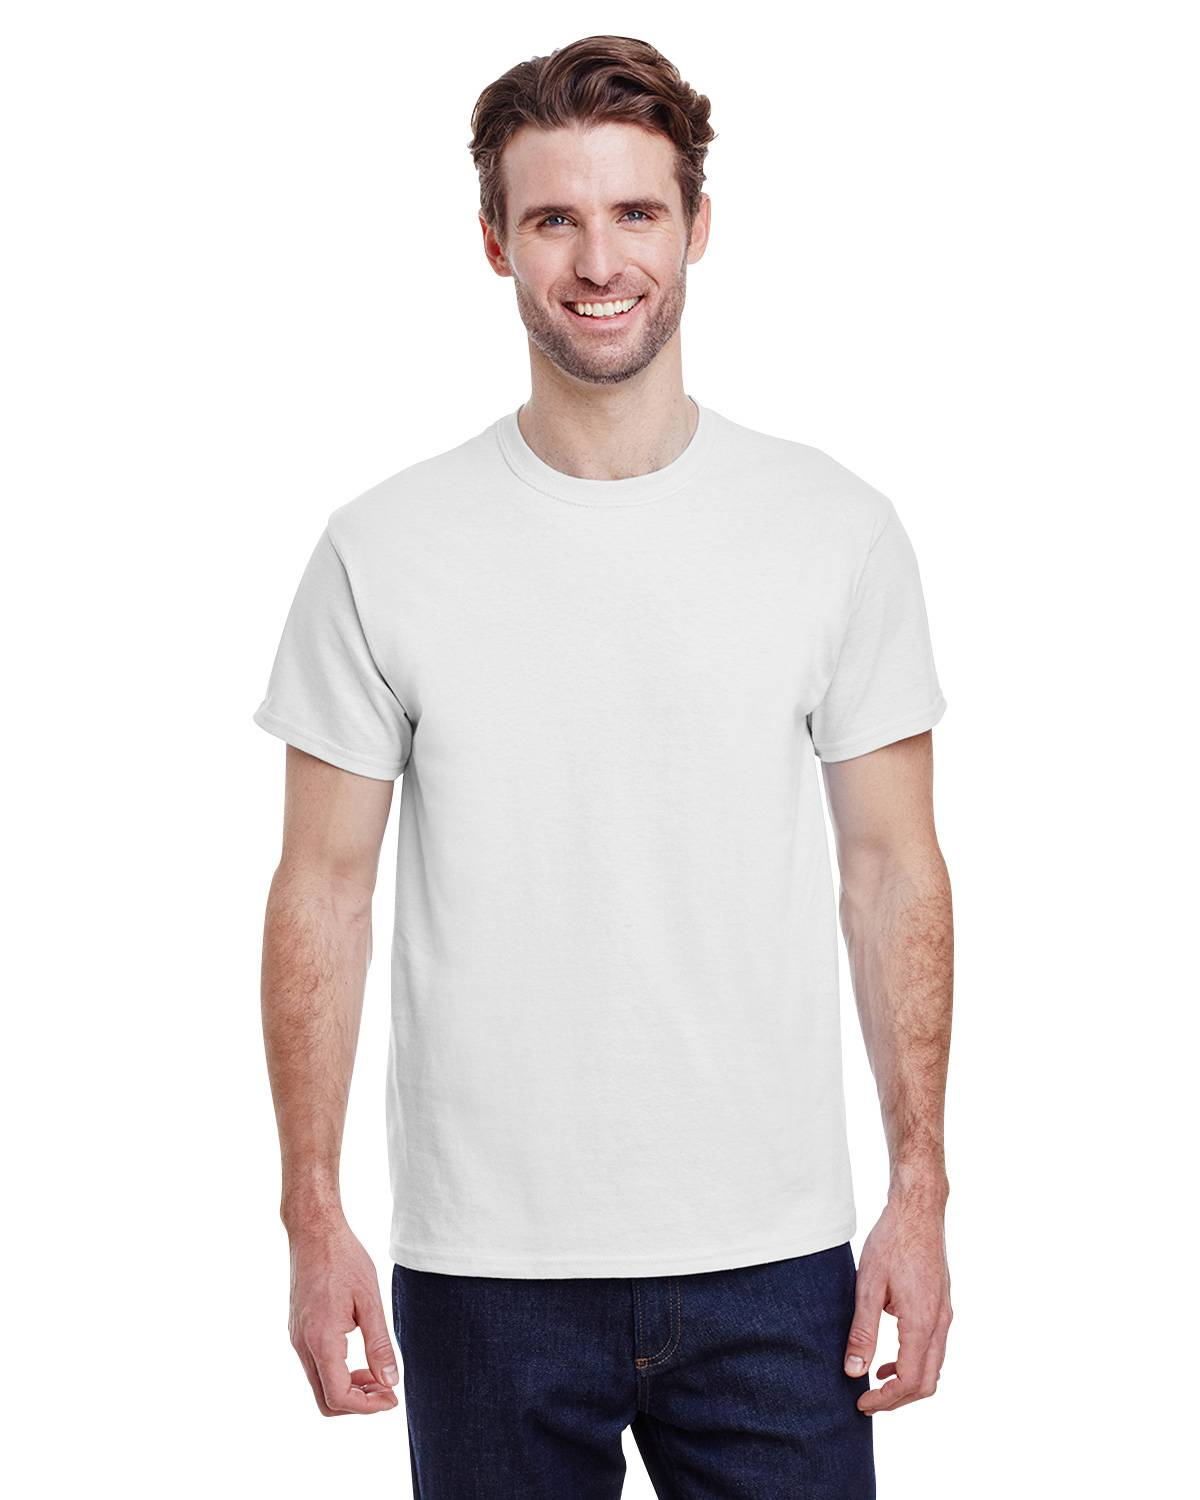 Gildan G500 T-Shirt White Customized Tee Adult and Youth Sizes